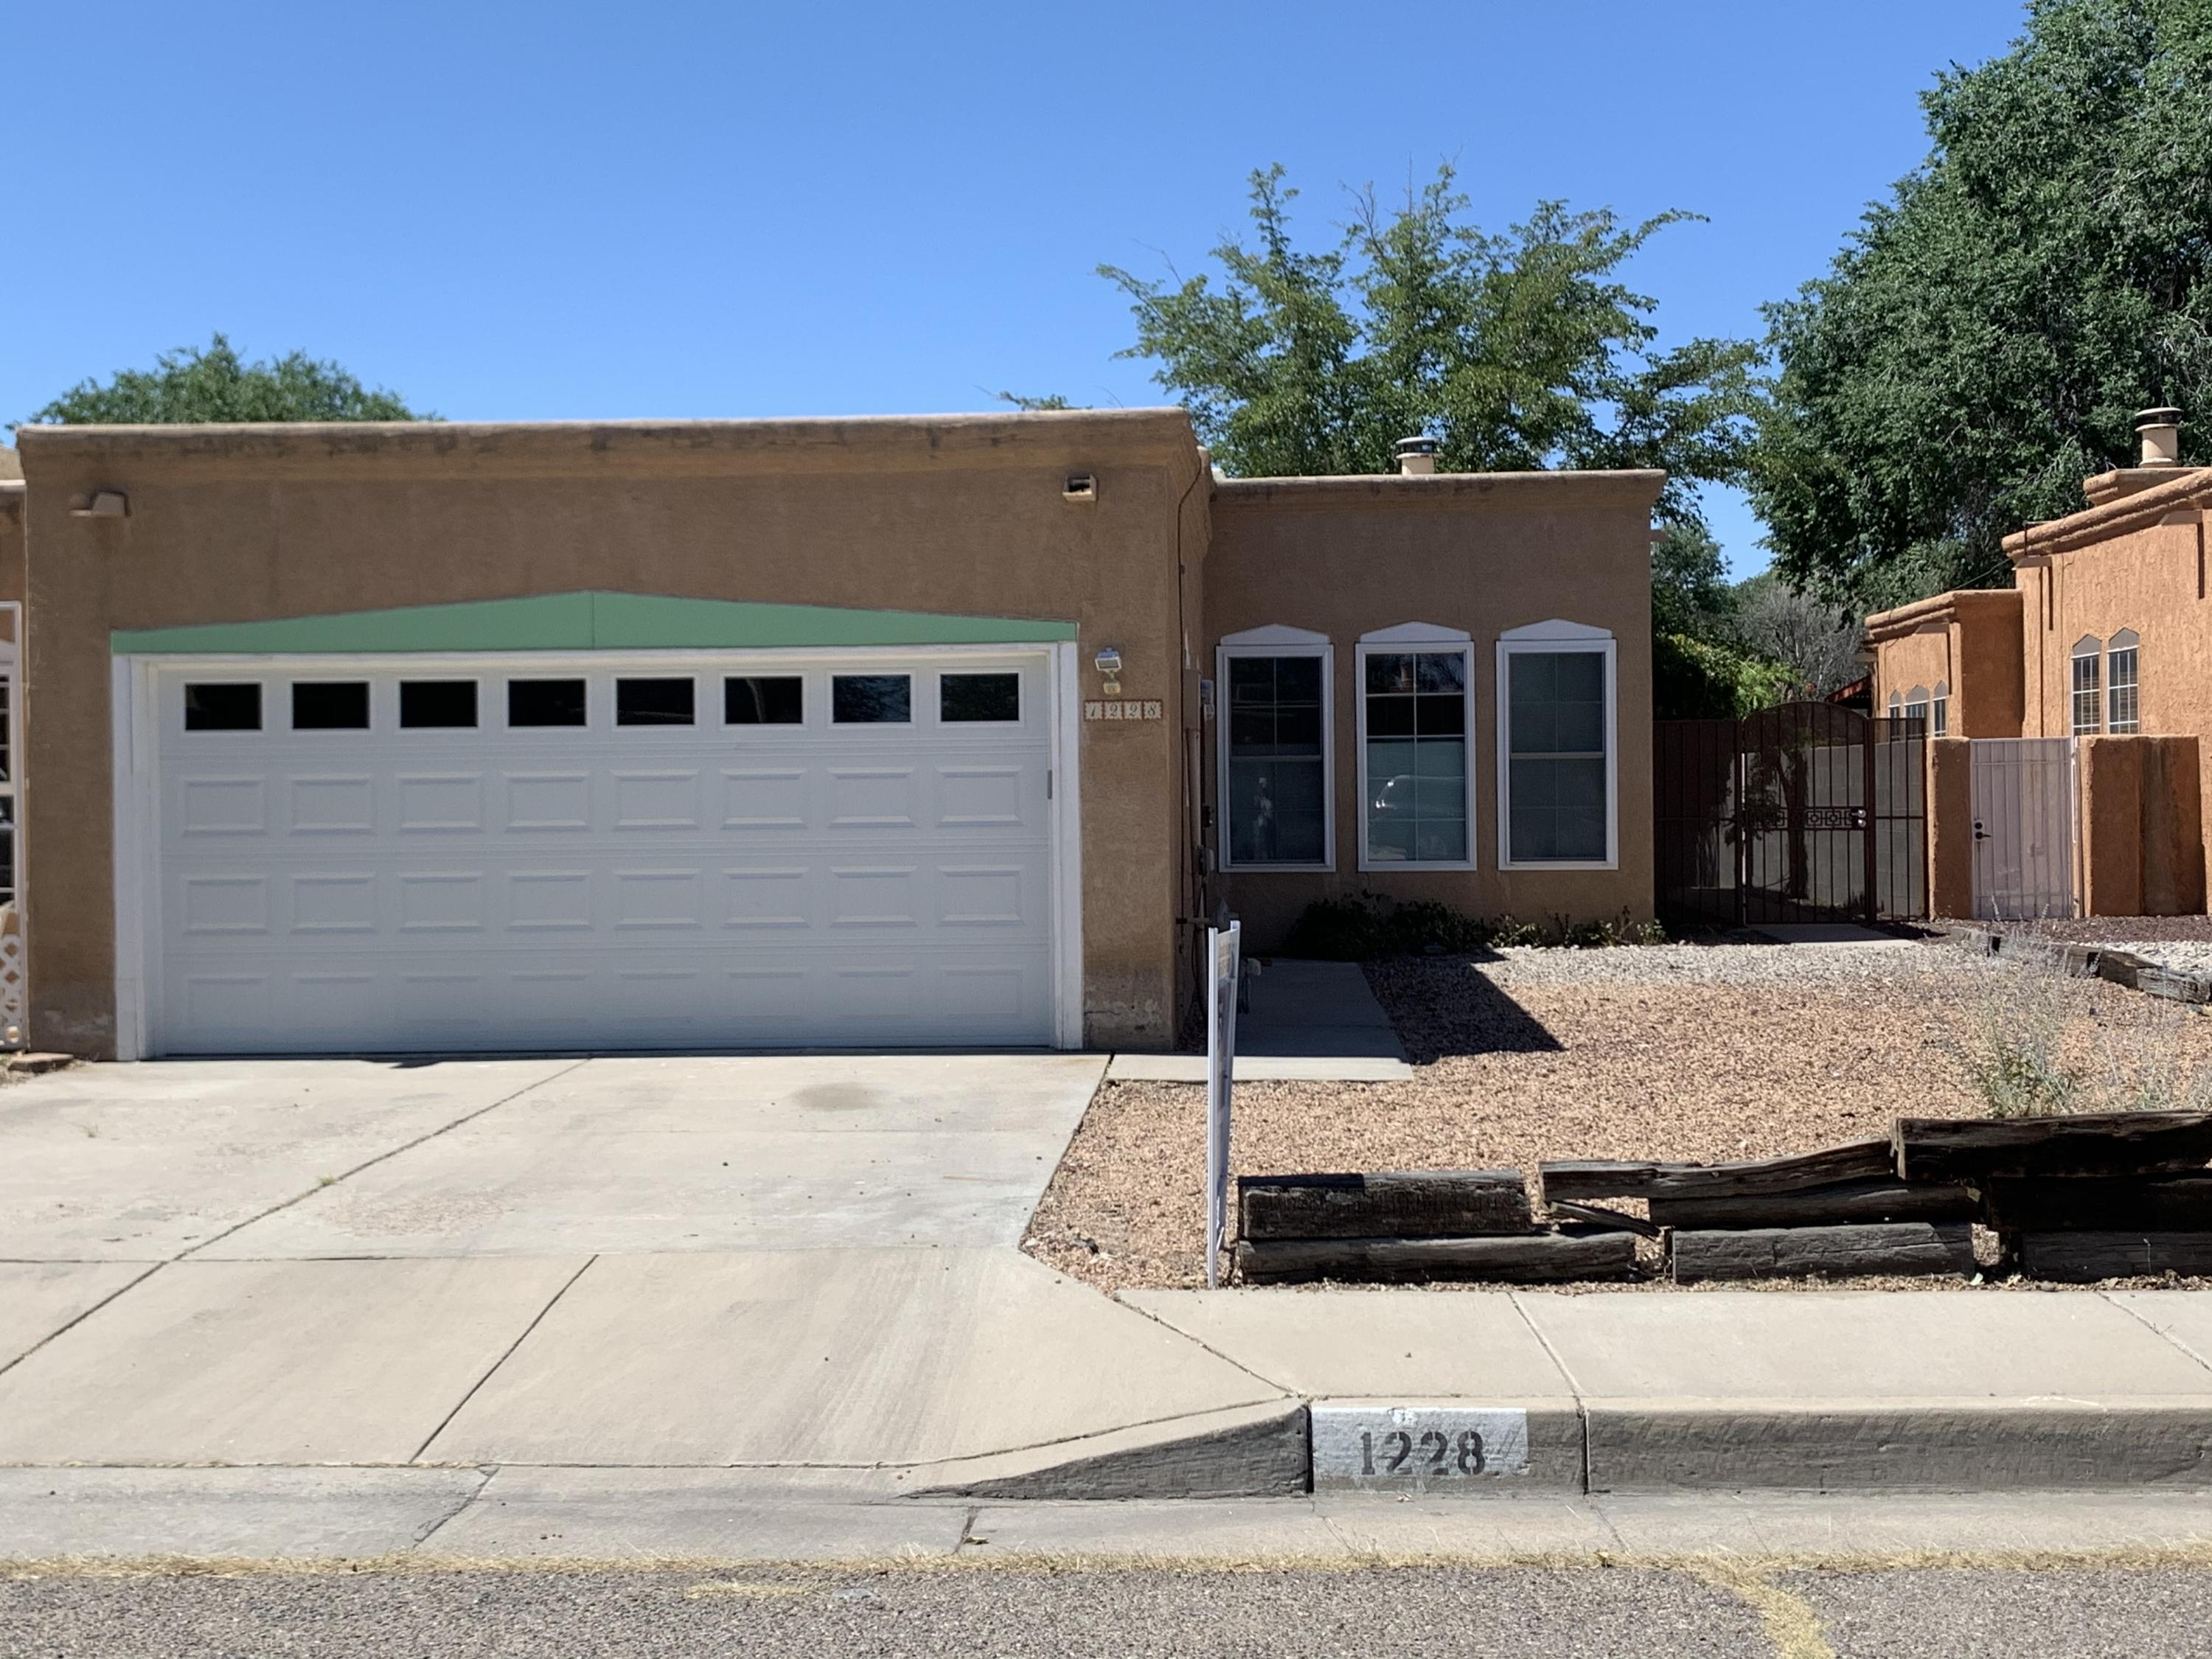 Move in ready North Valley town home with contemporary updates.  Laminate flooring throughout  (no carpet), honeycomb blinds, new dishwasher and fridge, stainless steel sink and granite countertops.  No HOA and conveniently located to I-40.